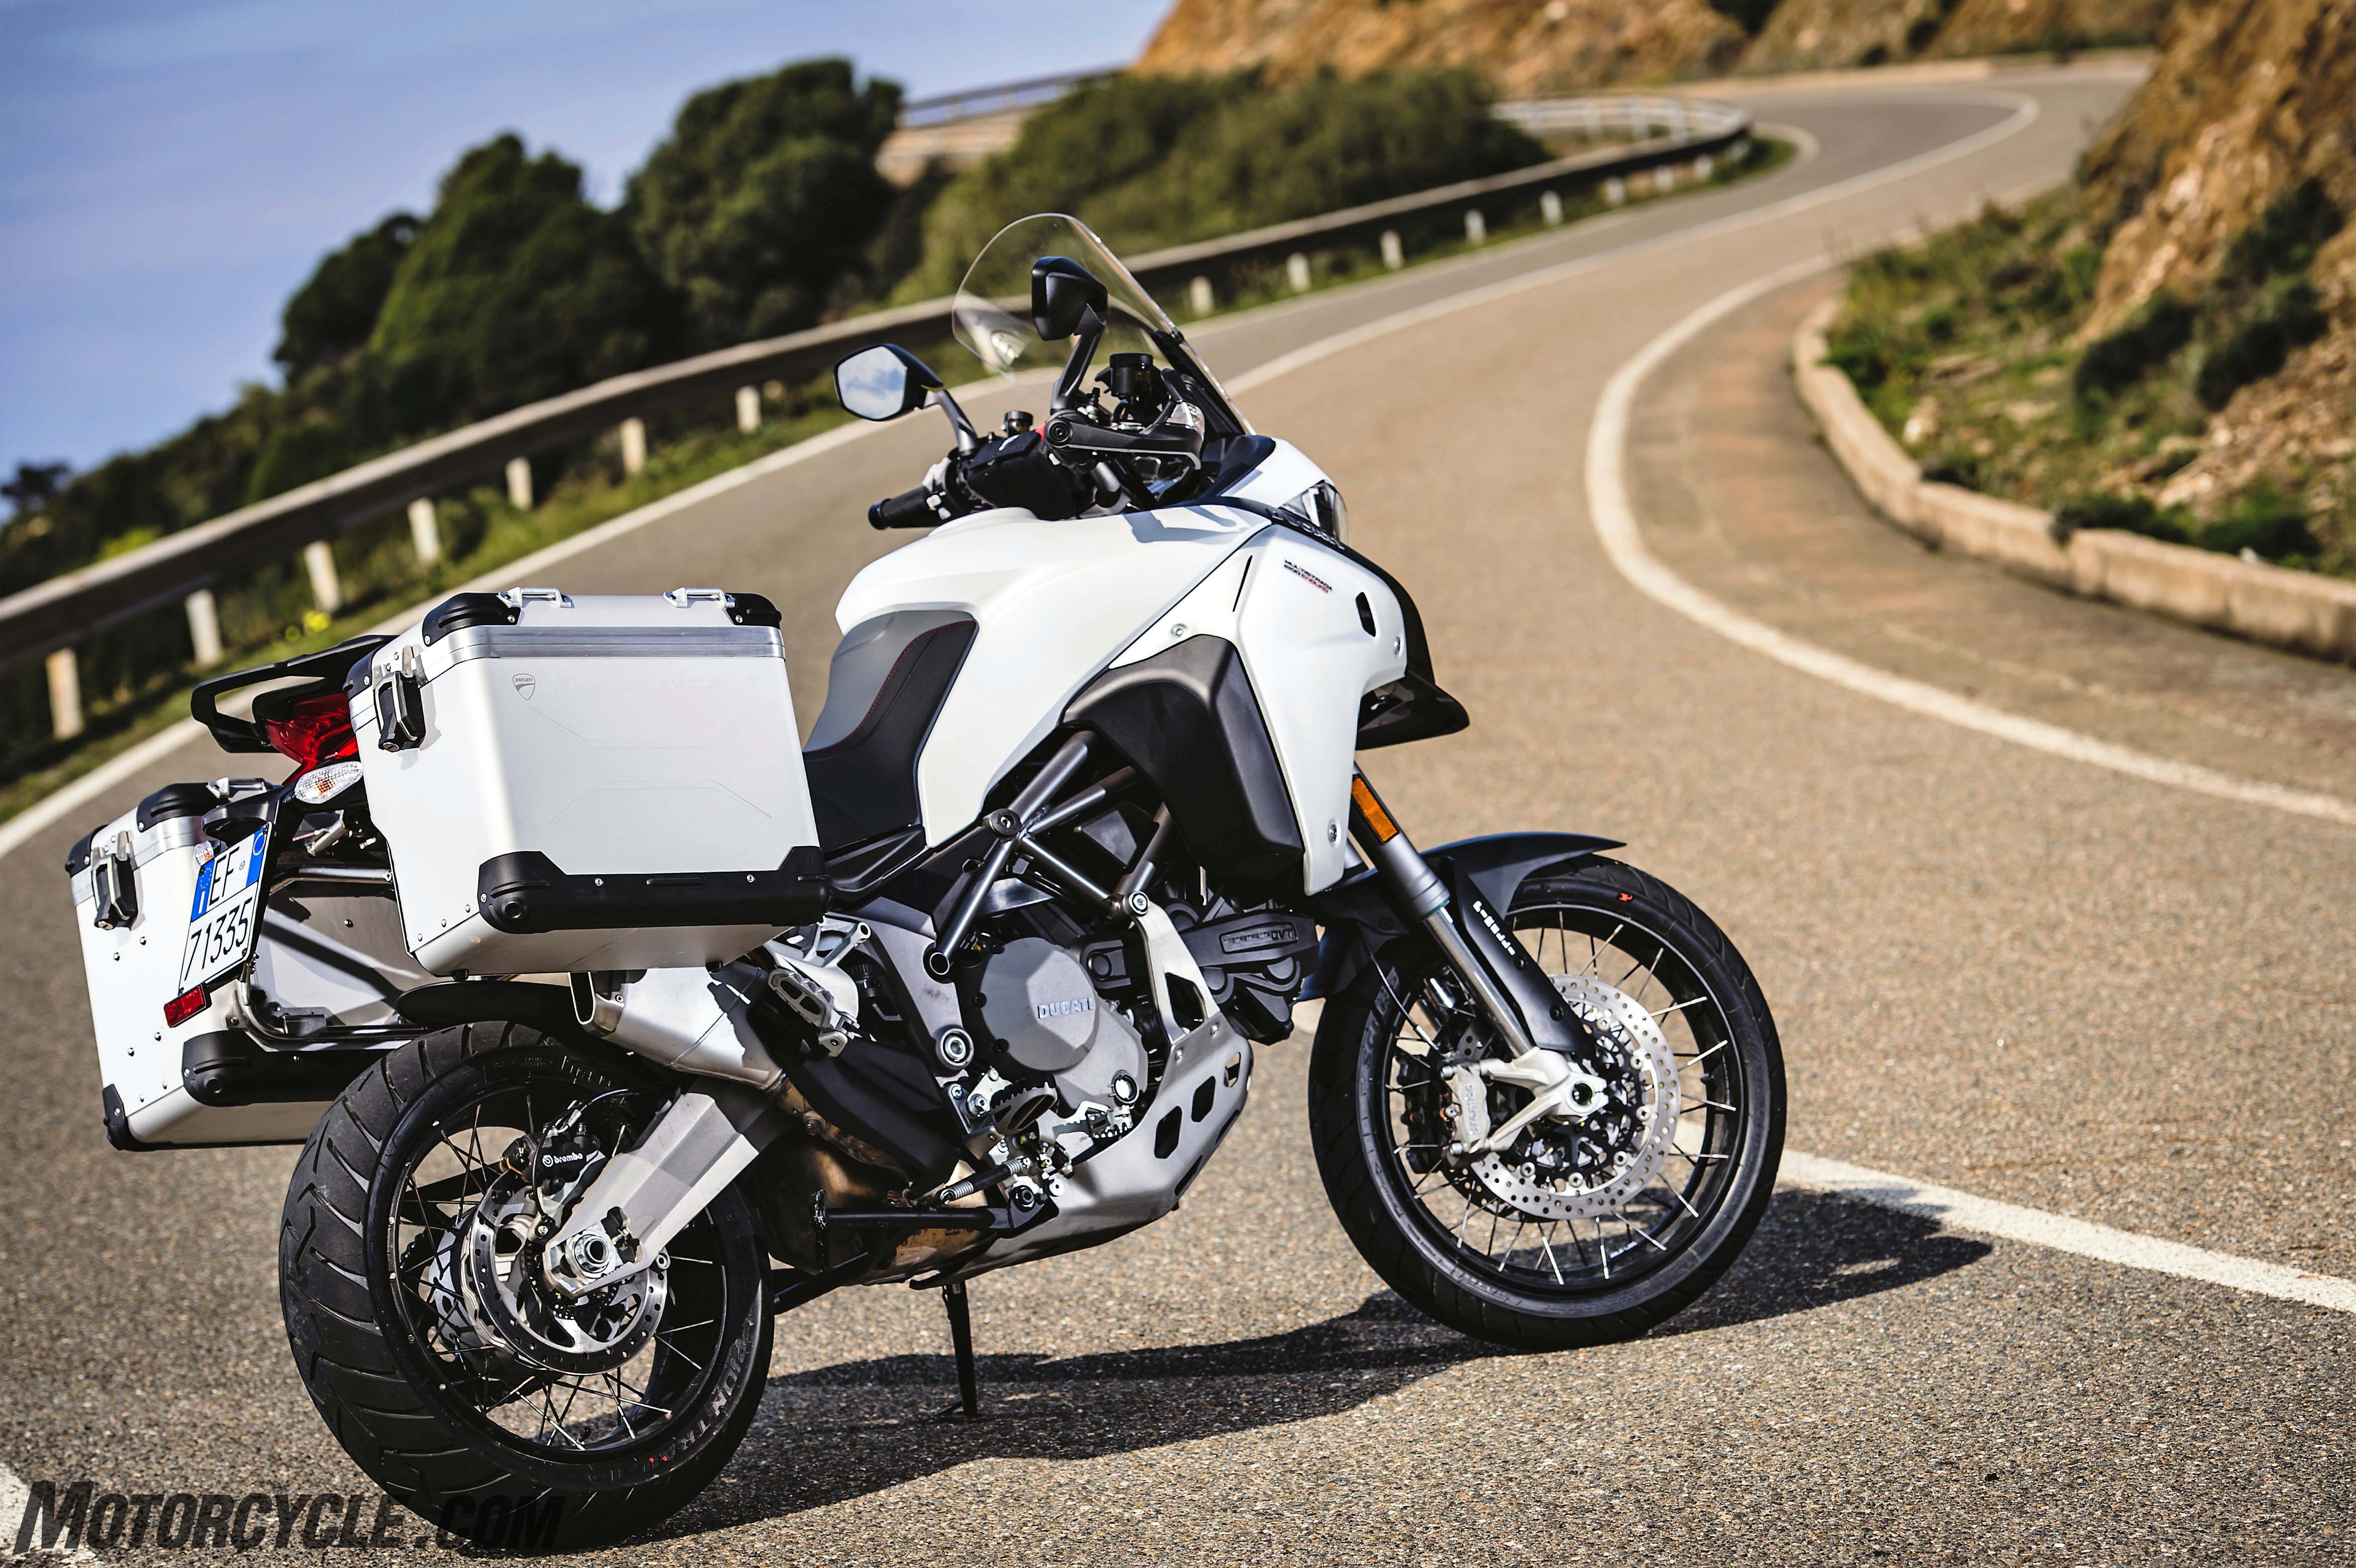 2016 Ducati Multistrada 1200 Enduro First Ride Review